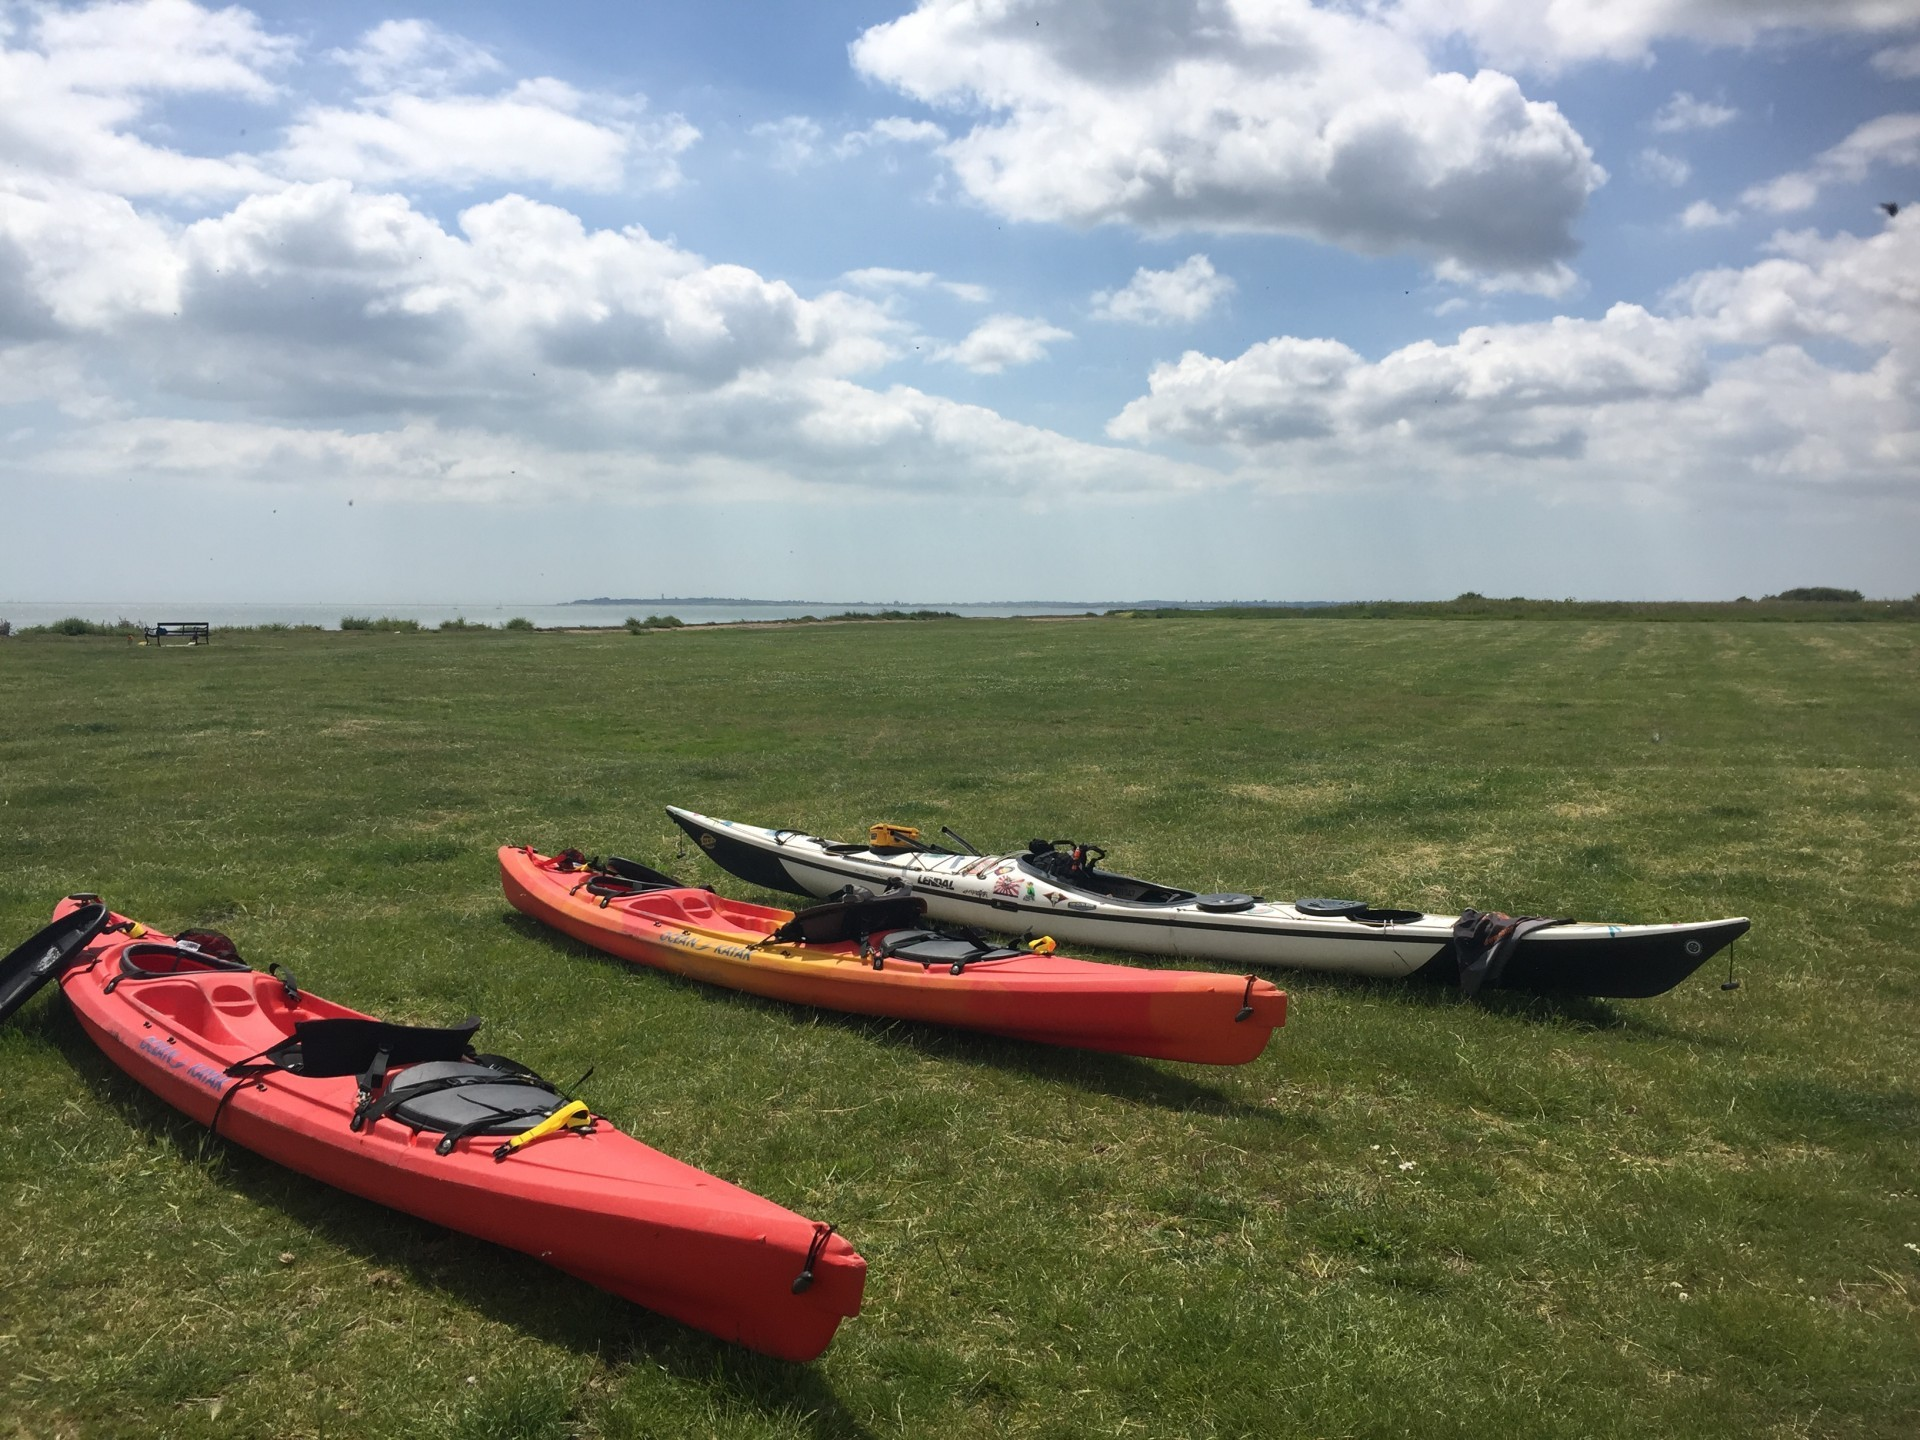 A selection of kayaks resting on the green grass on a sunny day